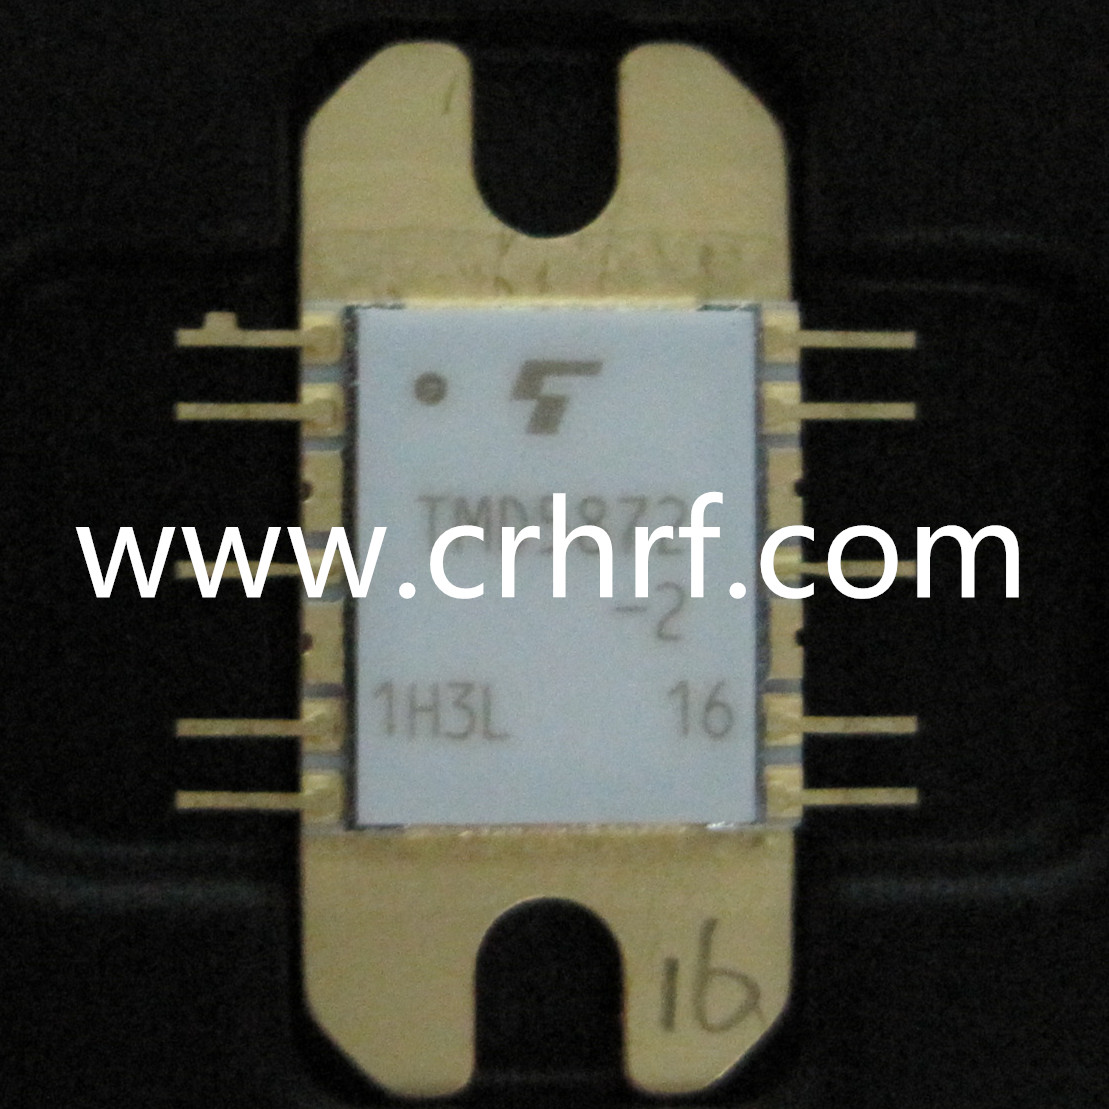 CRH Electronics Limited Offer RF Microwave Components